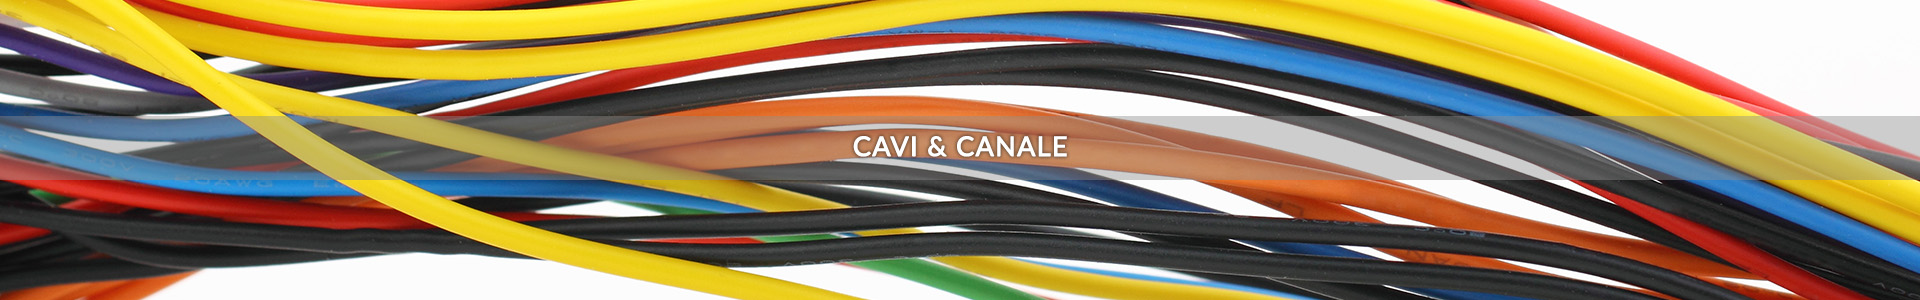 Cables and Trays